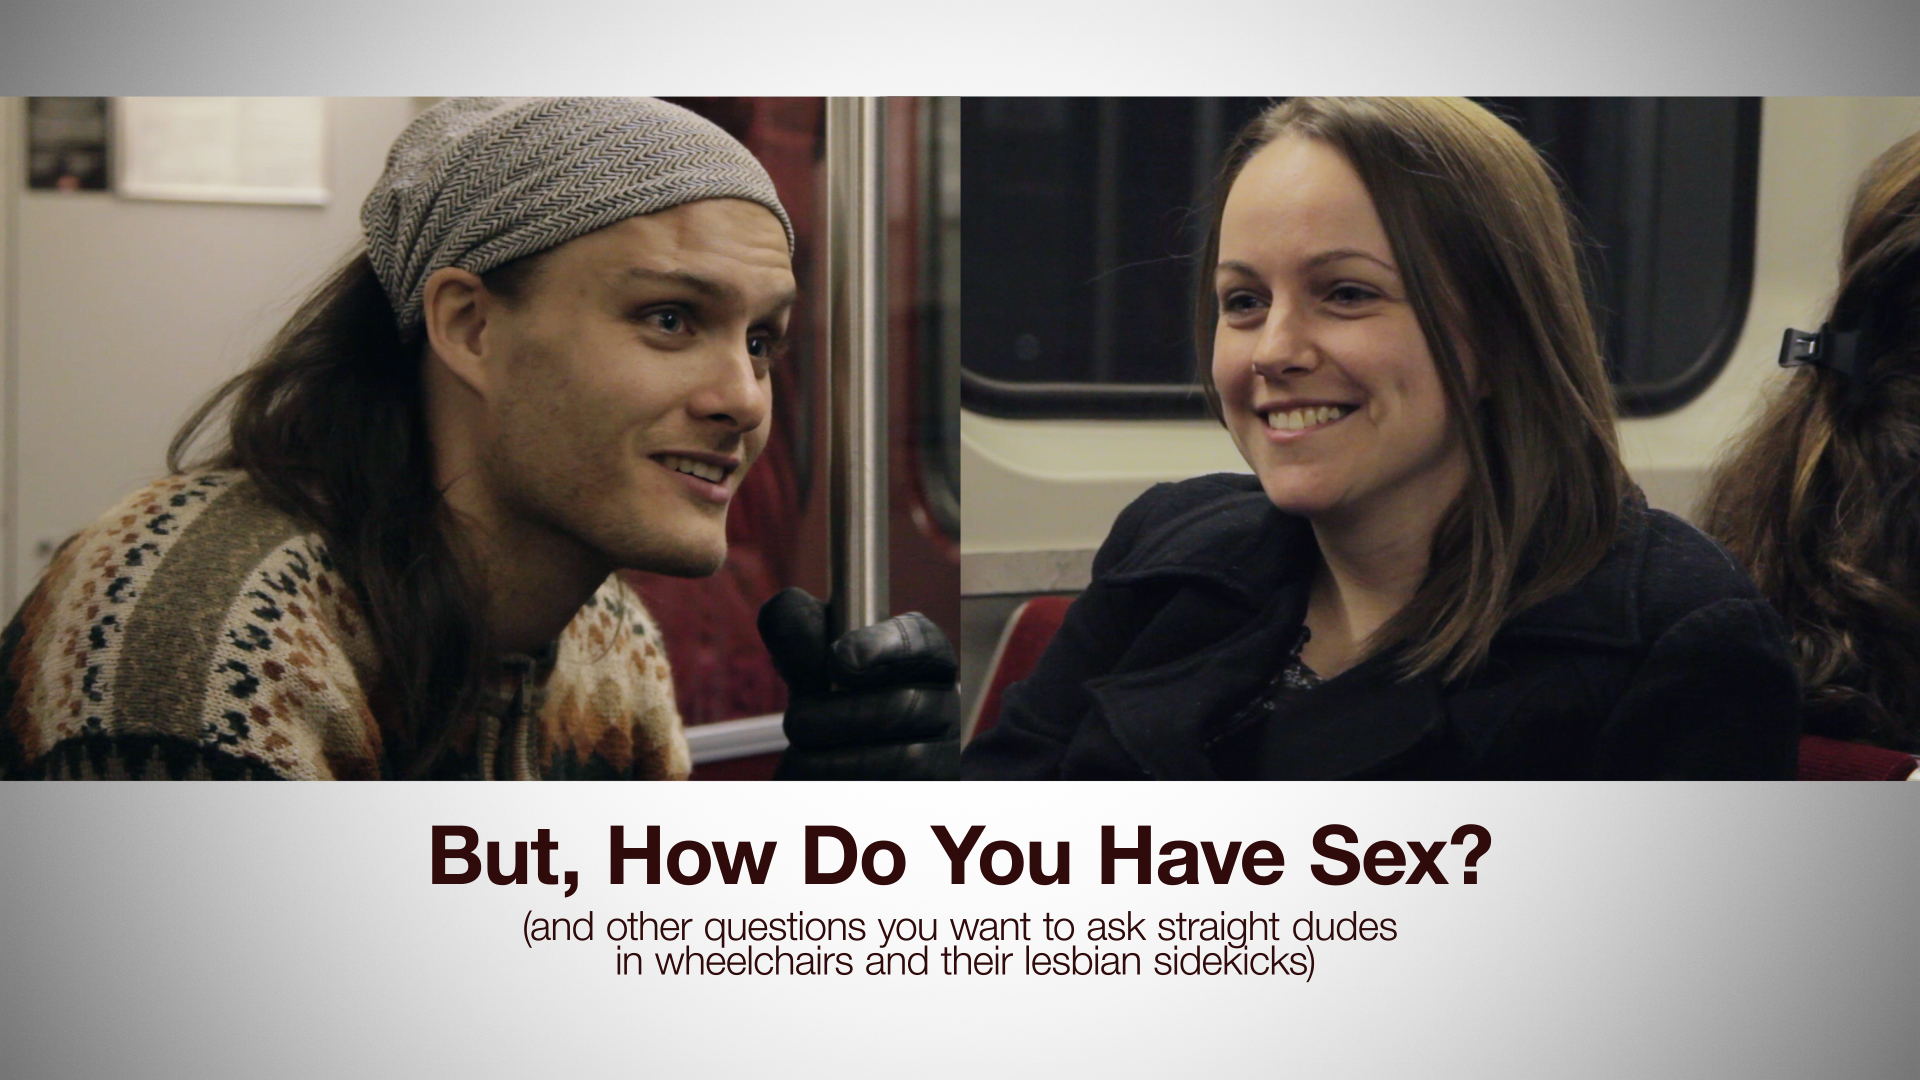 But, How Do You Have Sex?